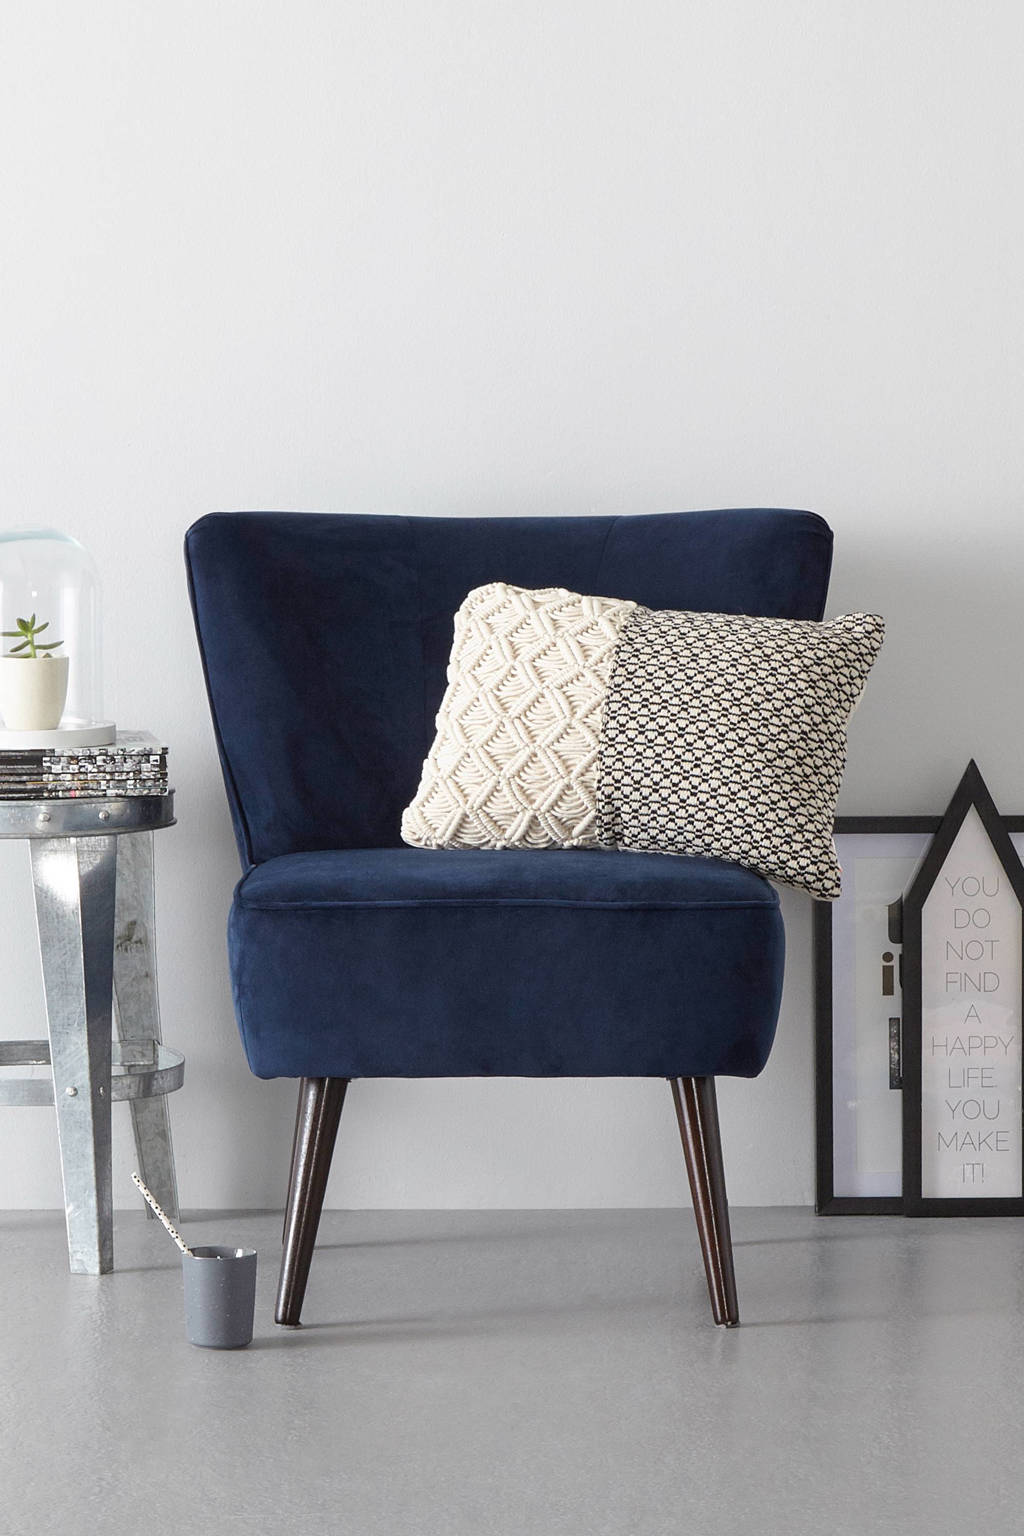 Wehkamp Home fauteuil Coco velours, Donkerblauw